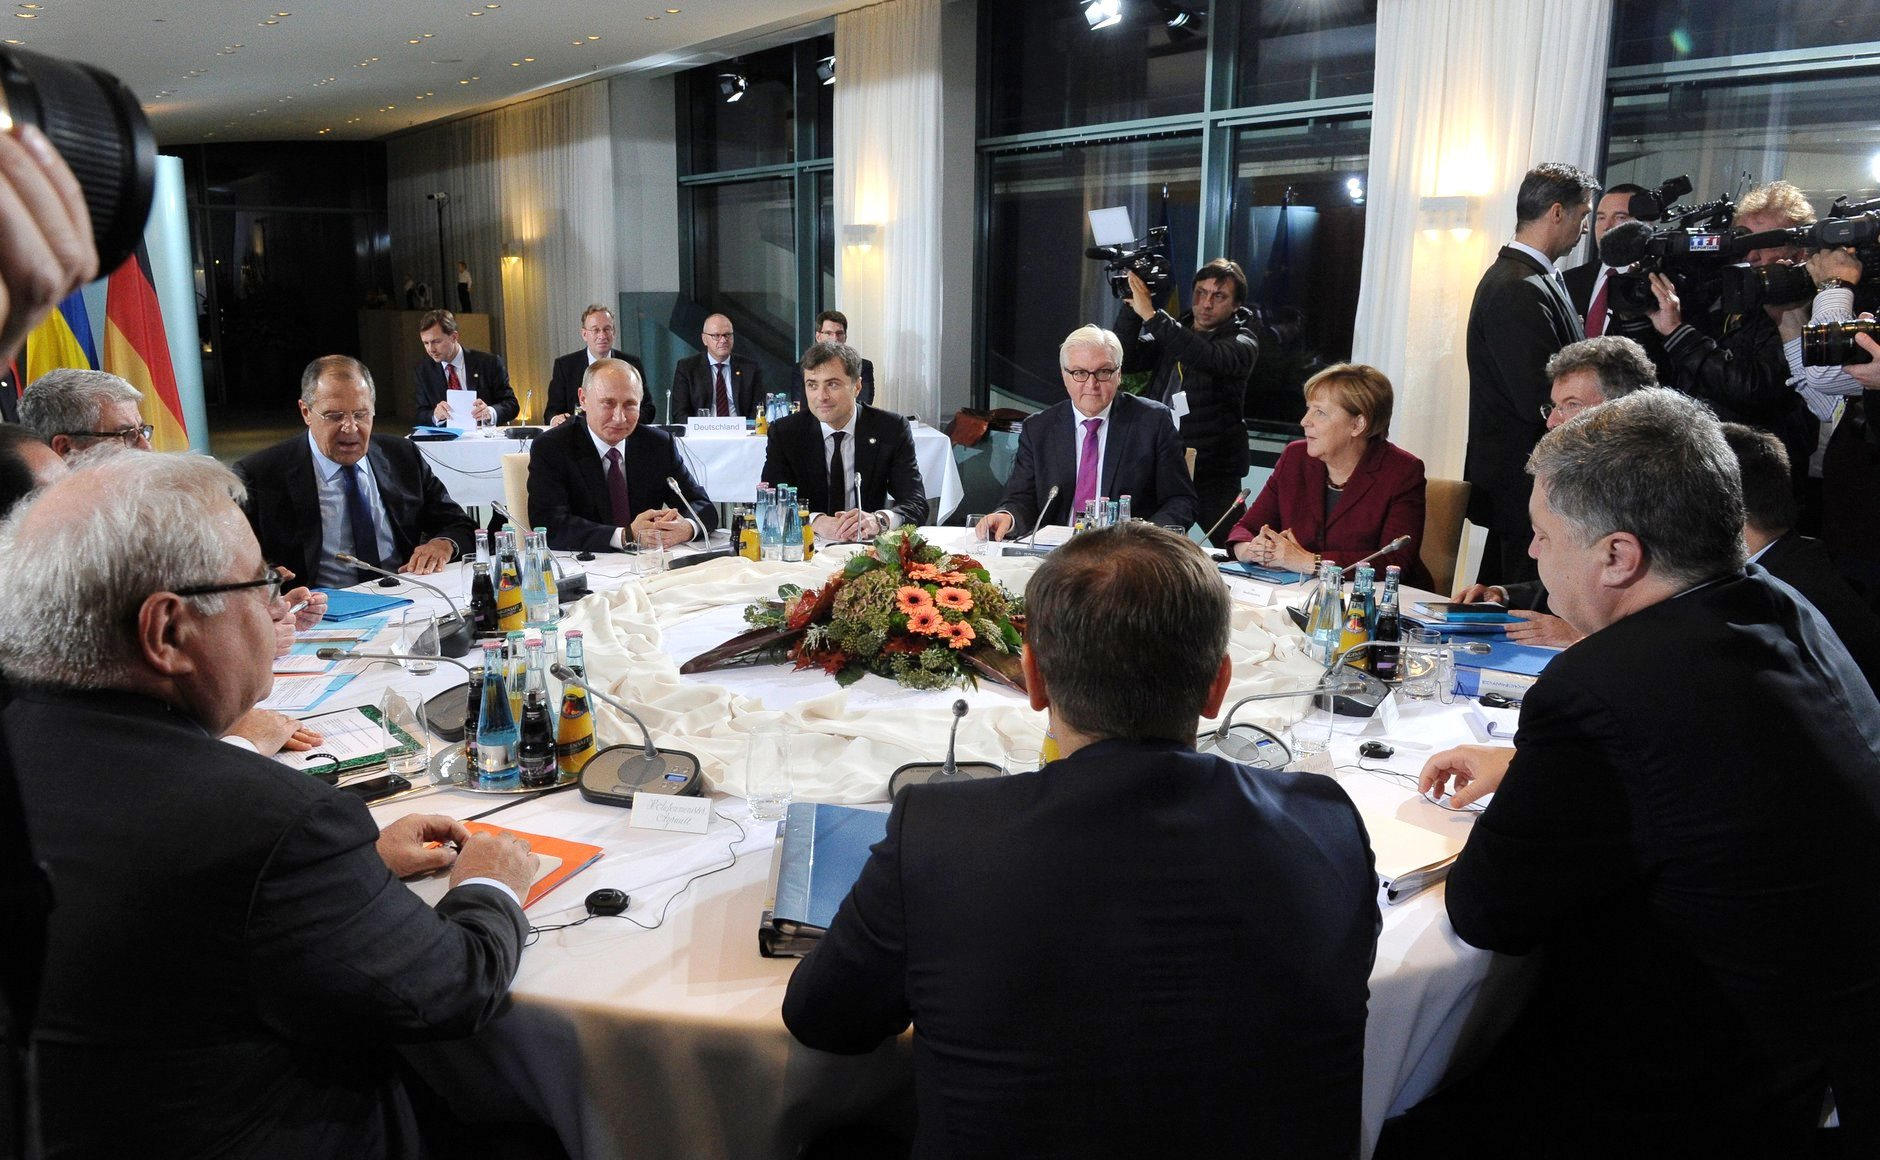 Merkel and Hollande threaten new Russia sanctions